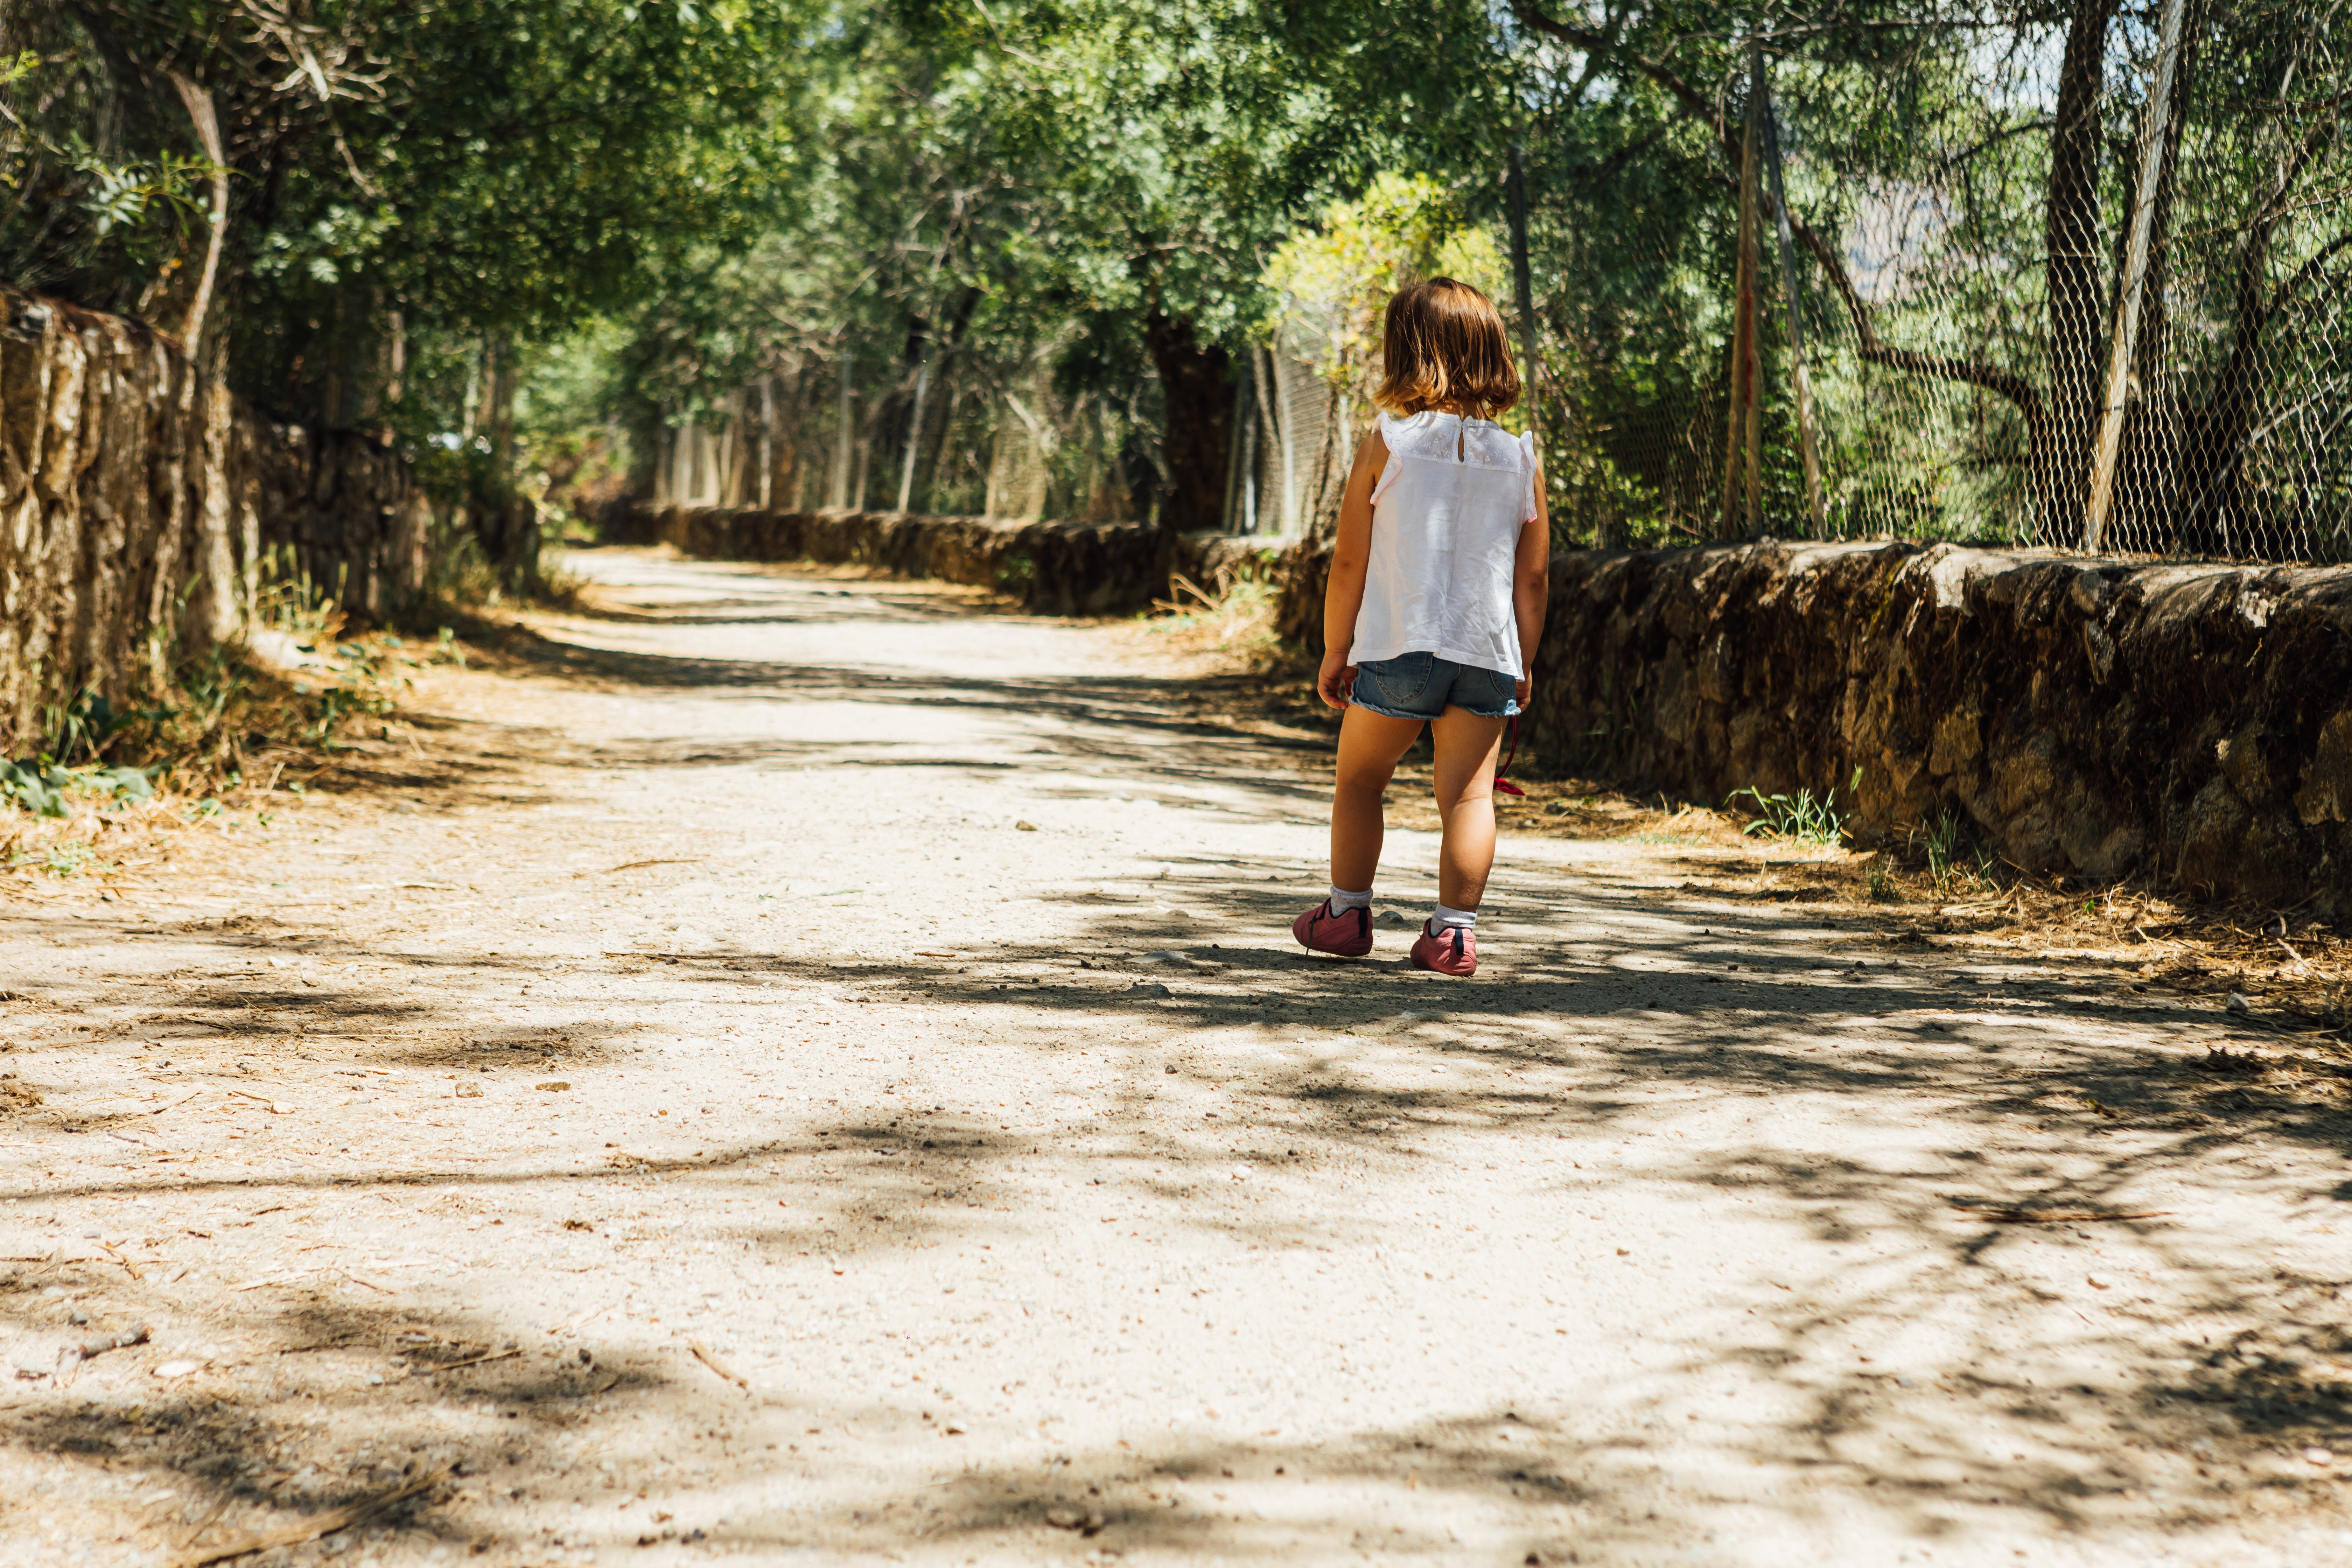 Little girl walking on a dirt road in summer